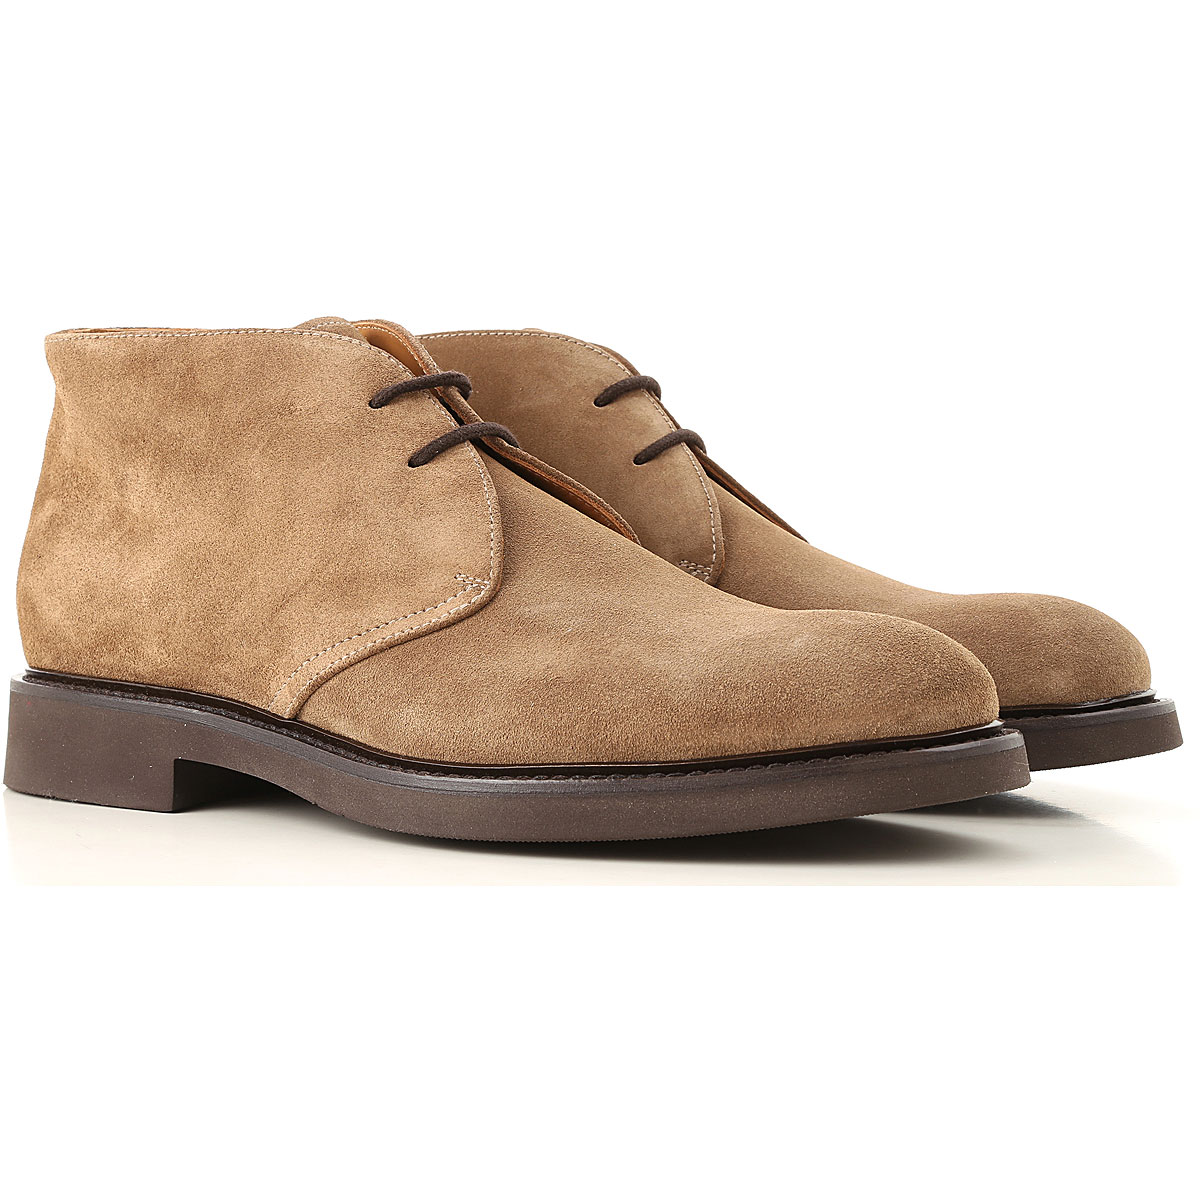 Image of Doucals Desert Boots Chukka for Men, Mink, Suede leather, 2017, 10 10.5 7.5 8 9